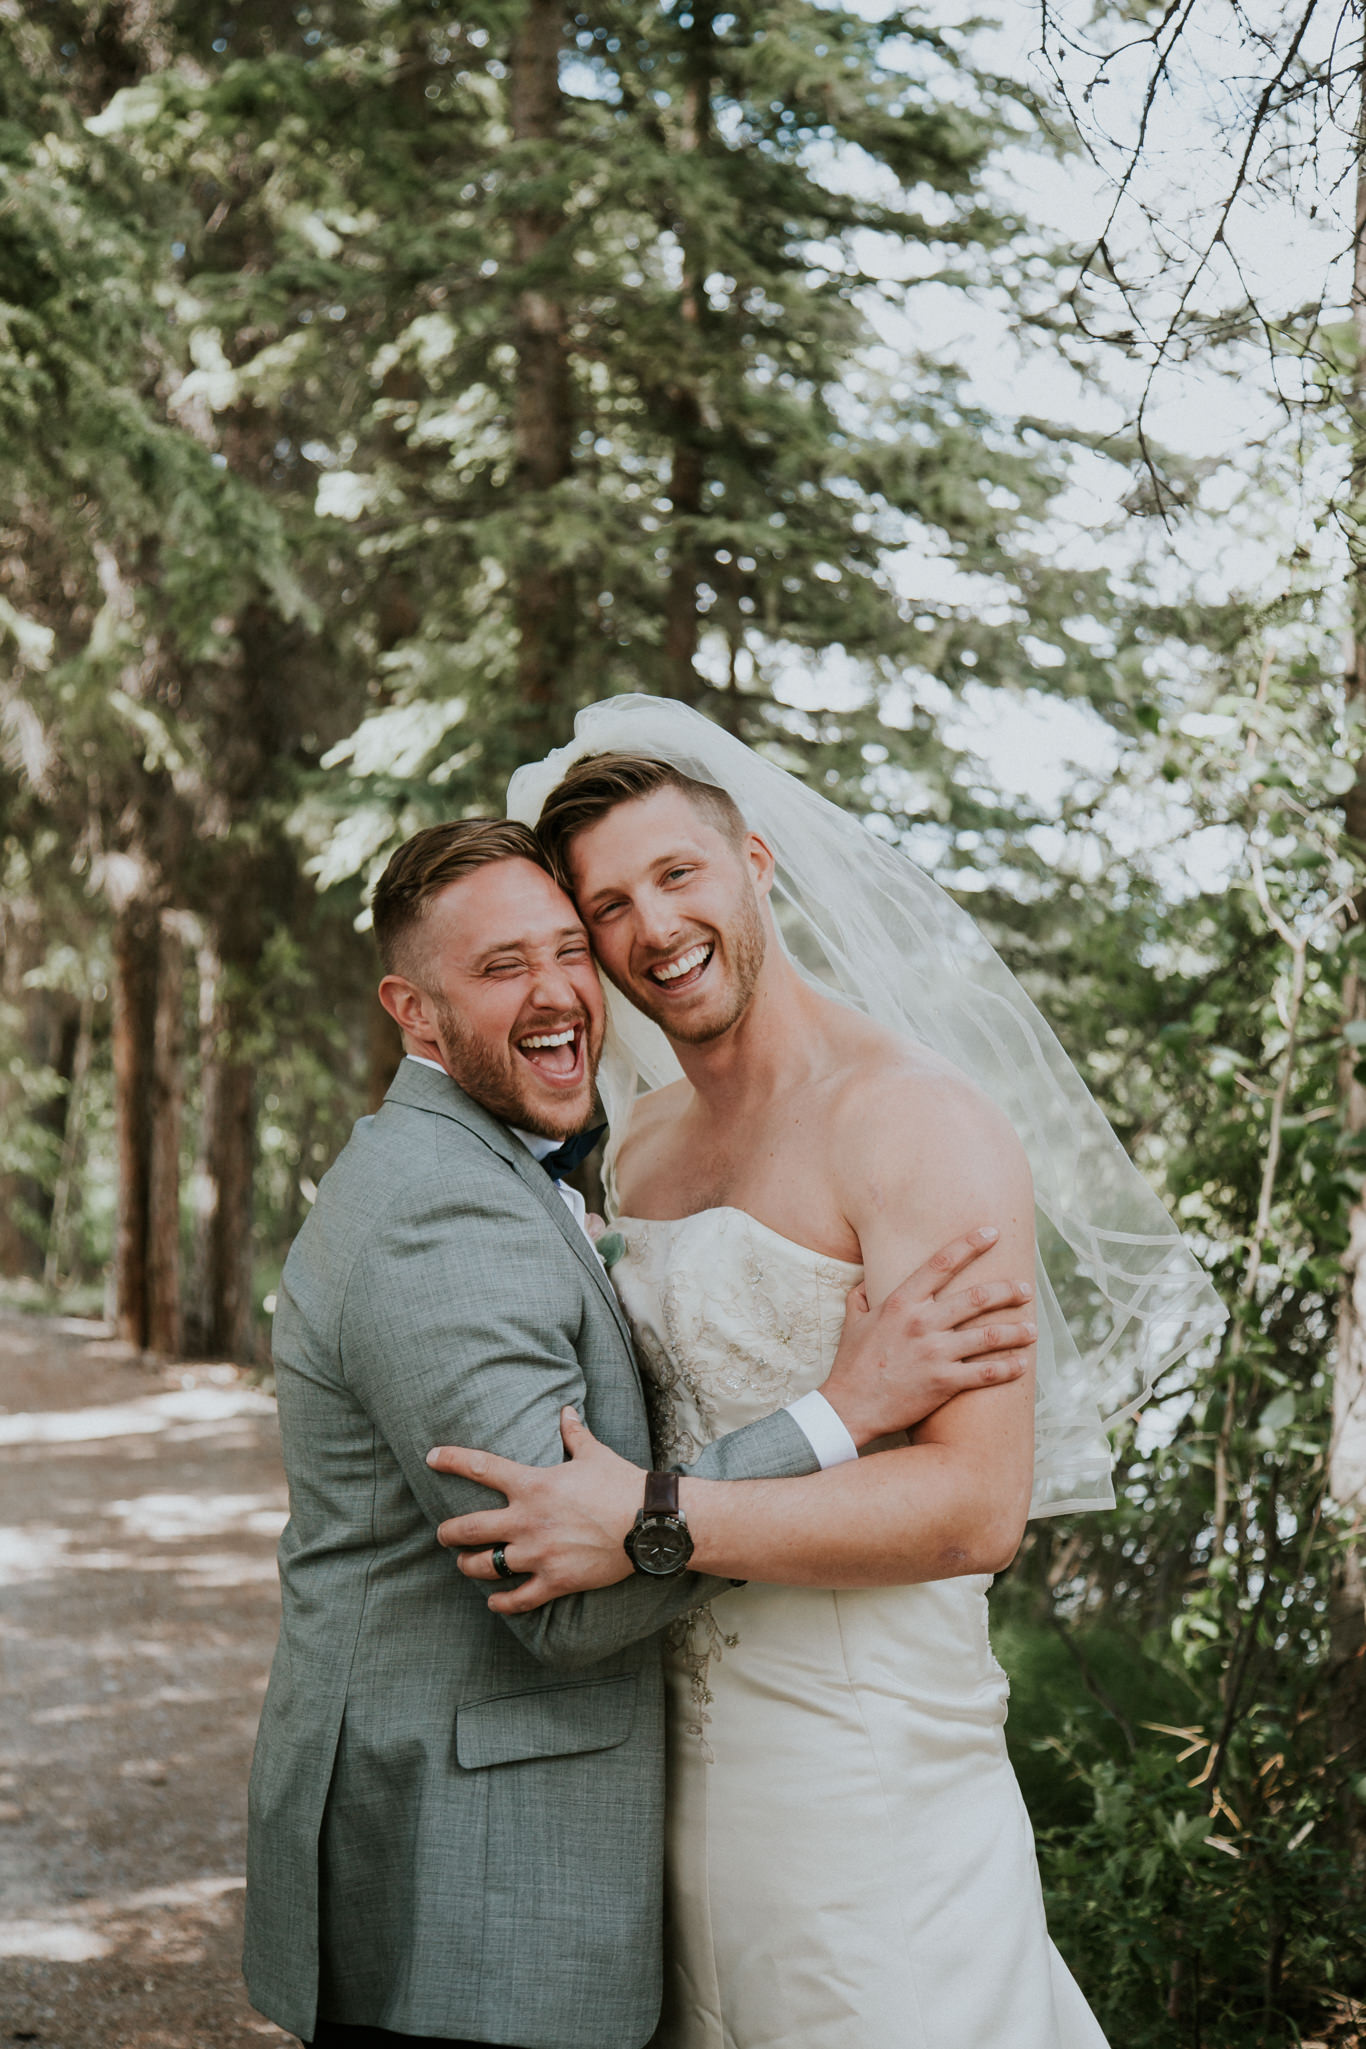 first-look-needs-to-be-crashed-by-your-best-man-in-a-wedding-dress-8